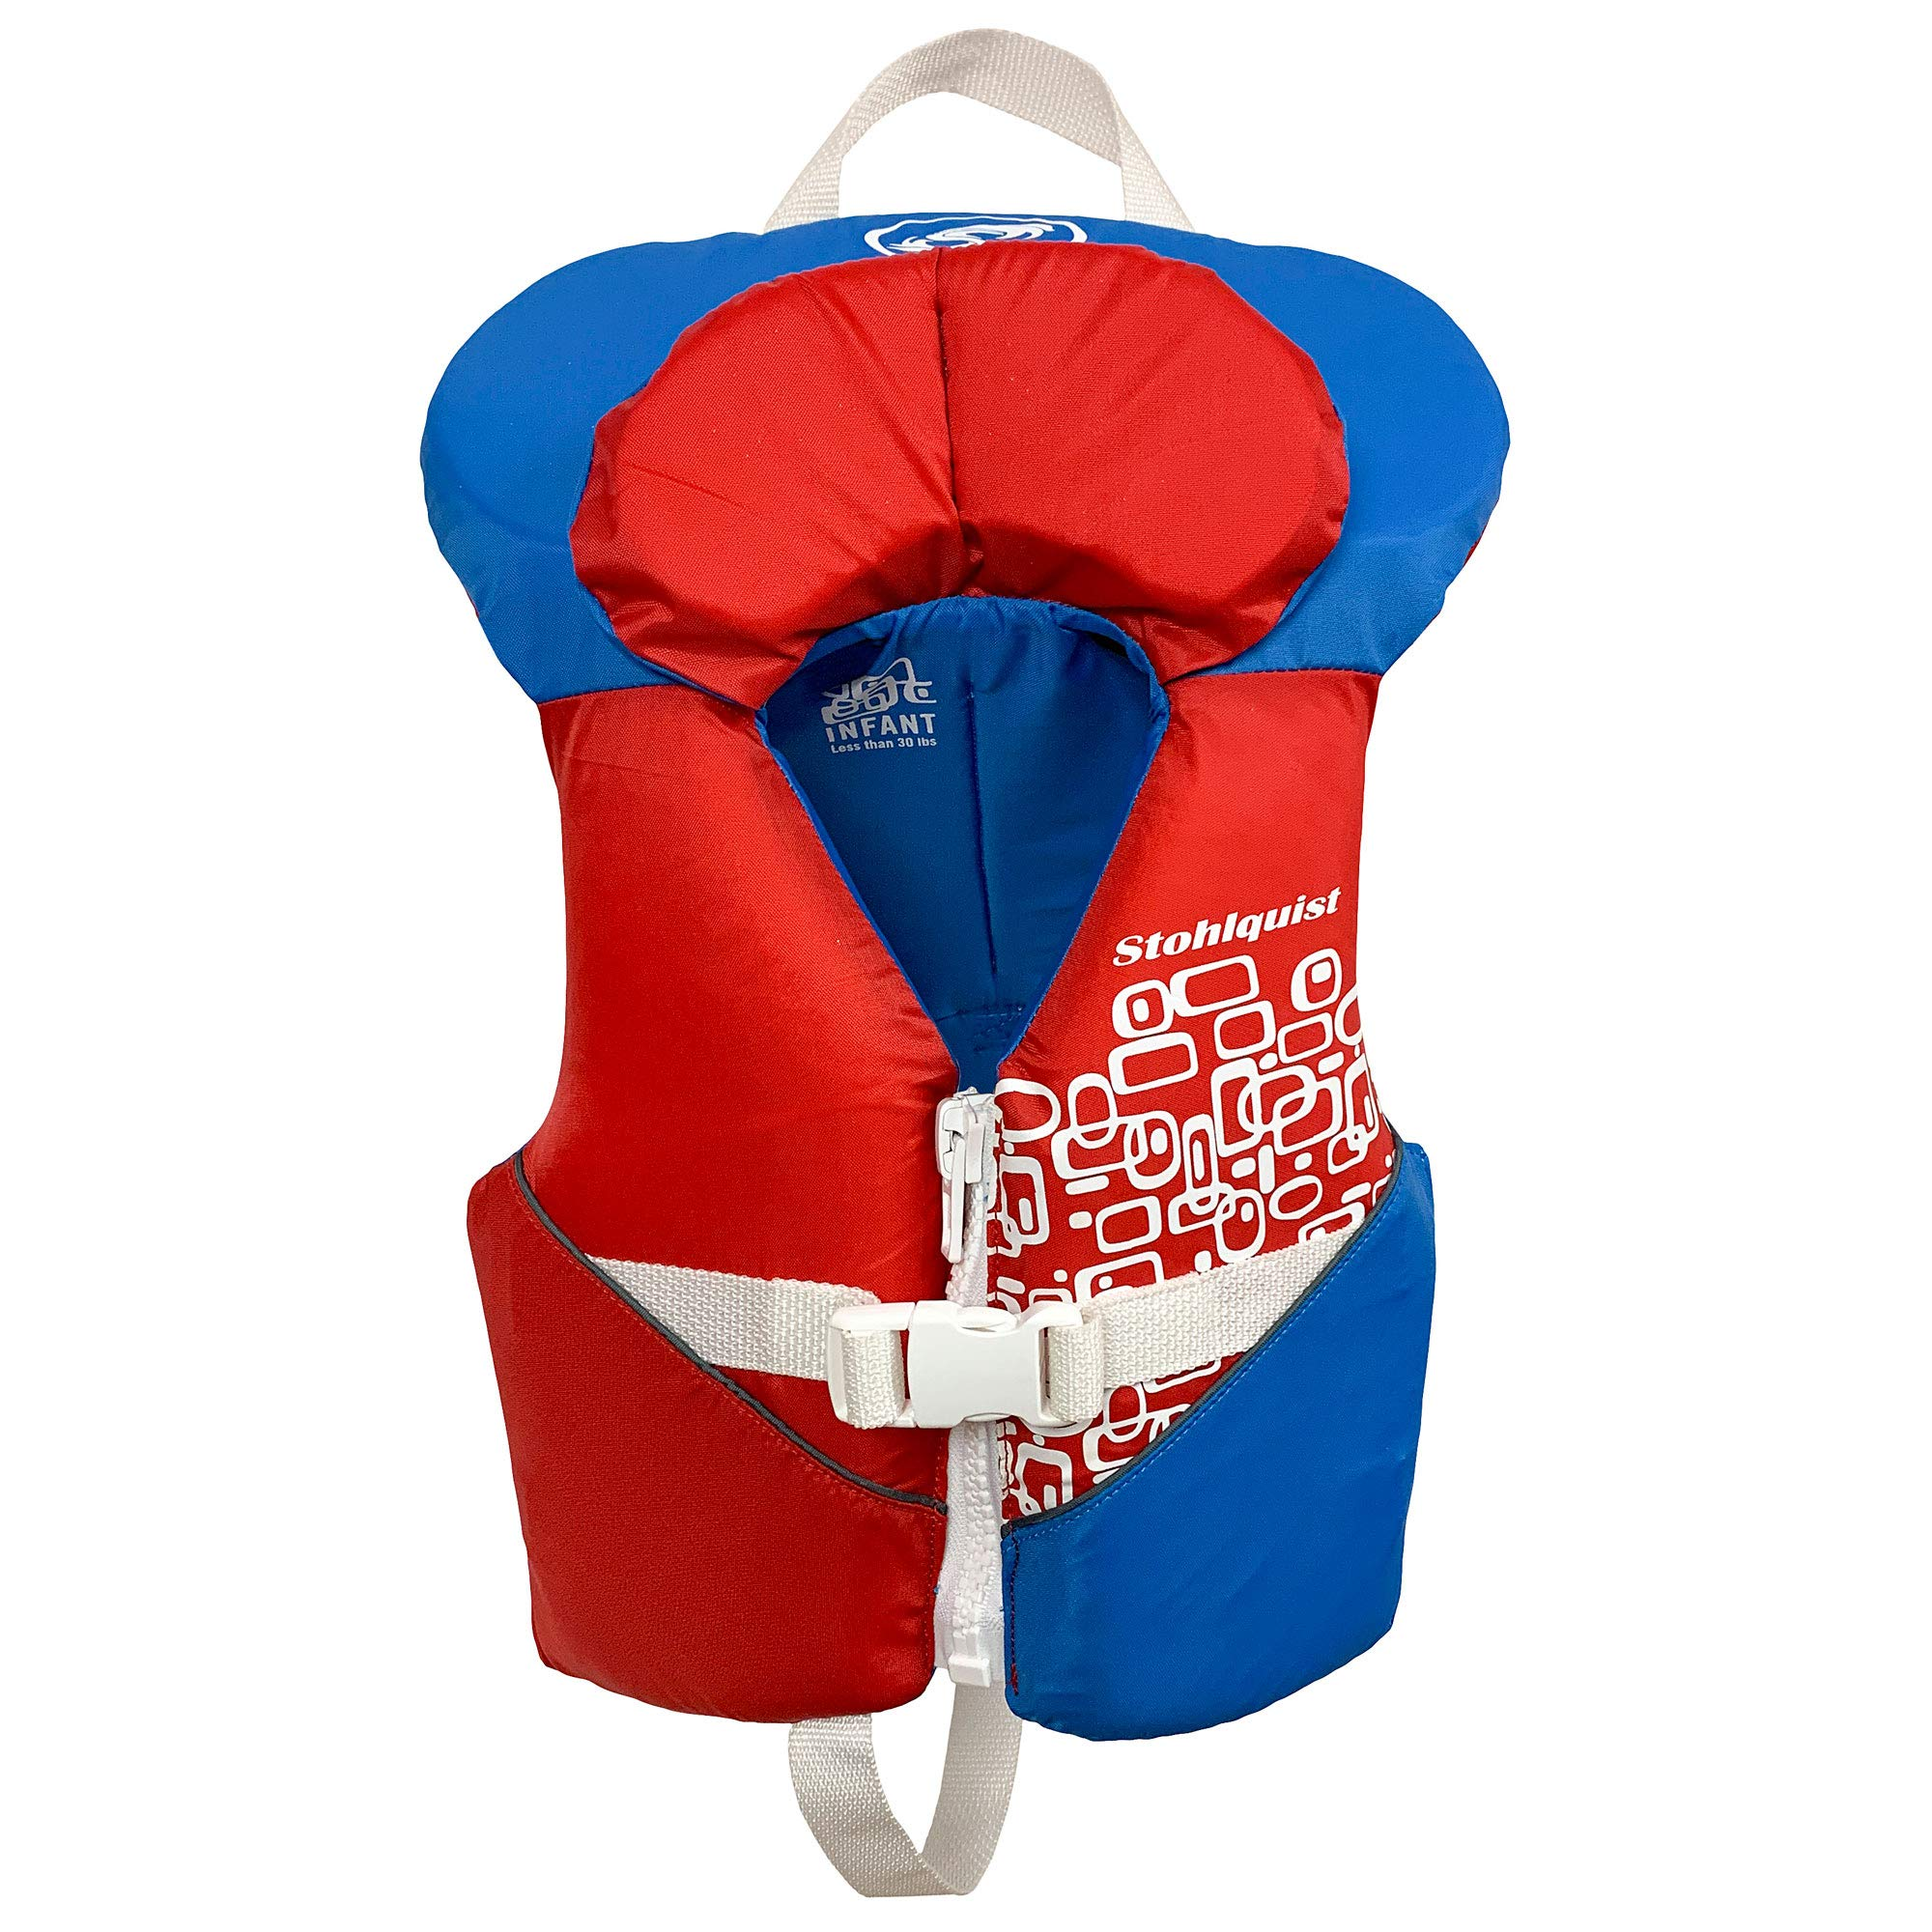 Stohlquist Toddler Life Jacket Coast Guard Approved Life Vest for InfantsRed/White/Blue-Infant by Stohlquist Waterware